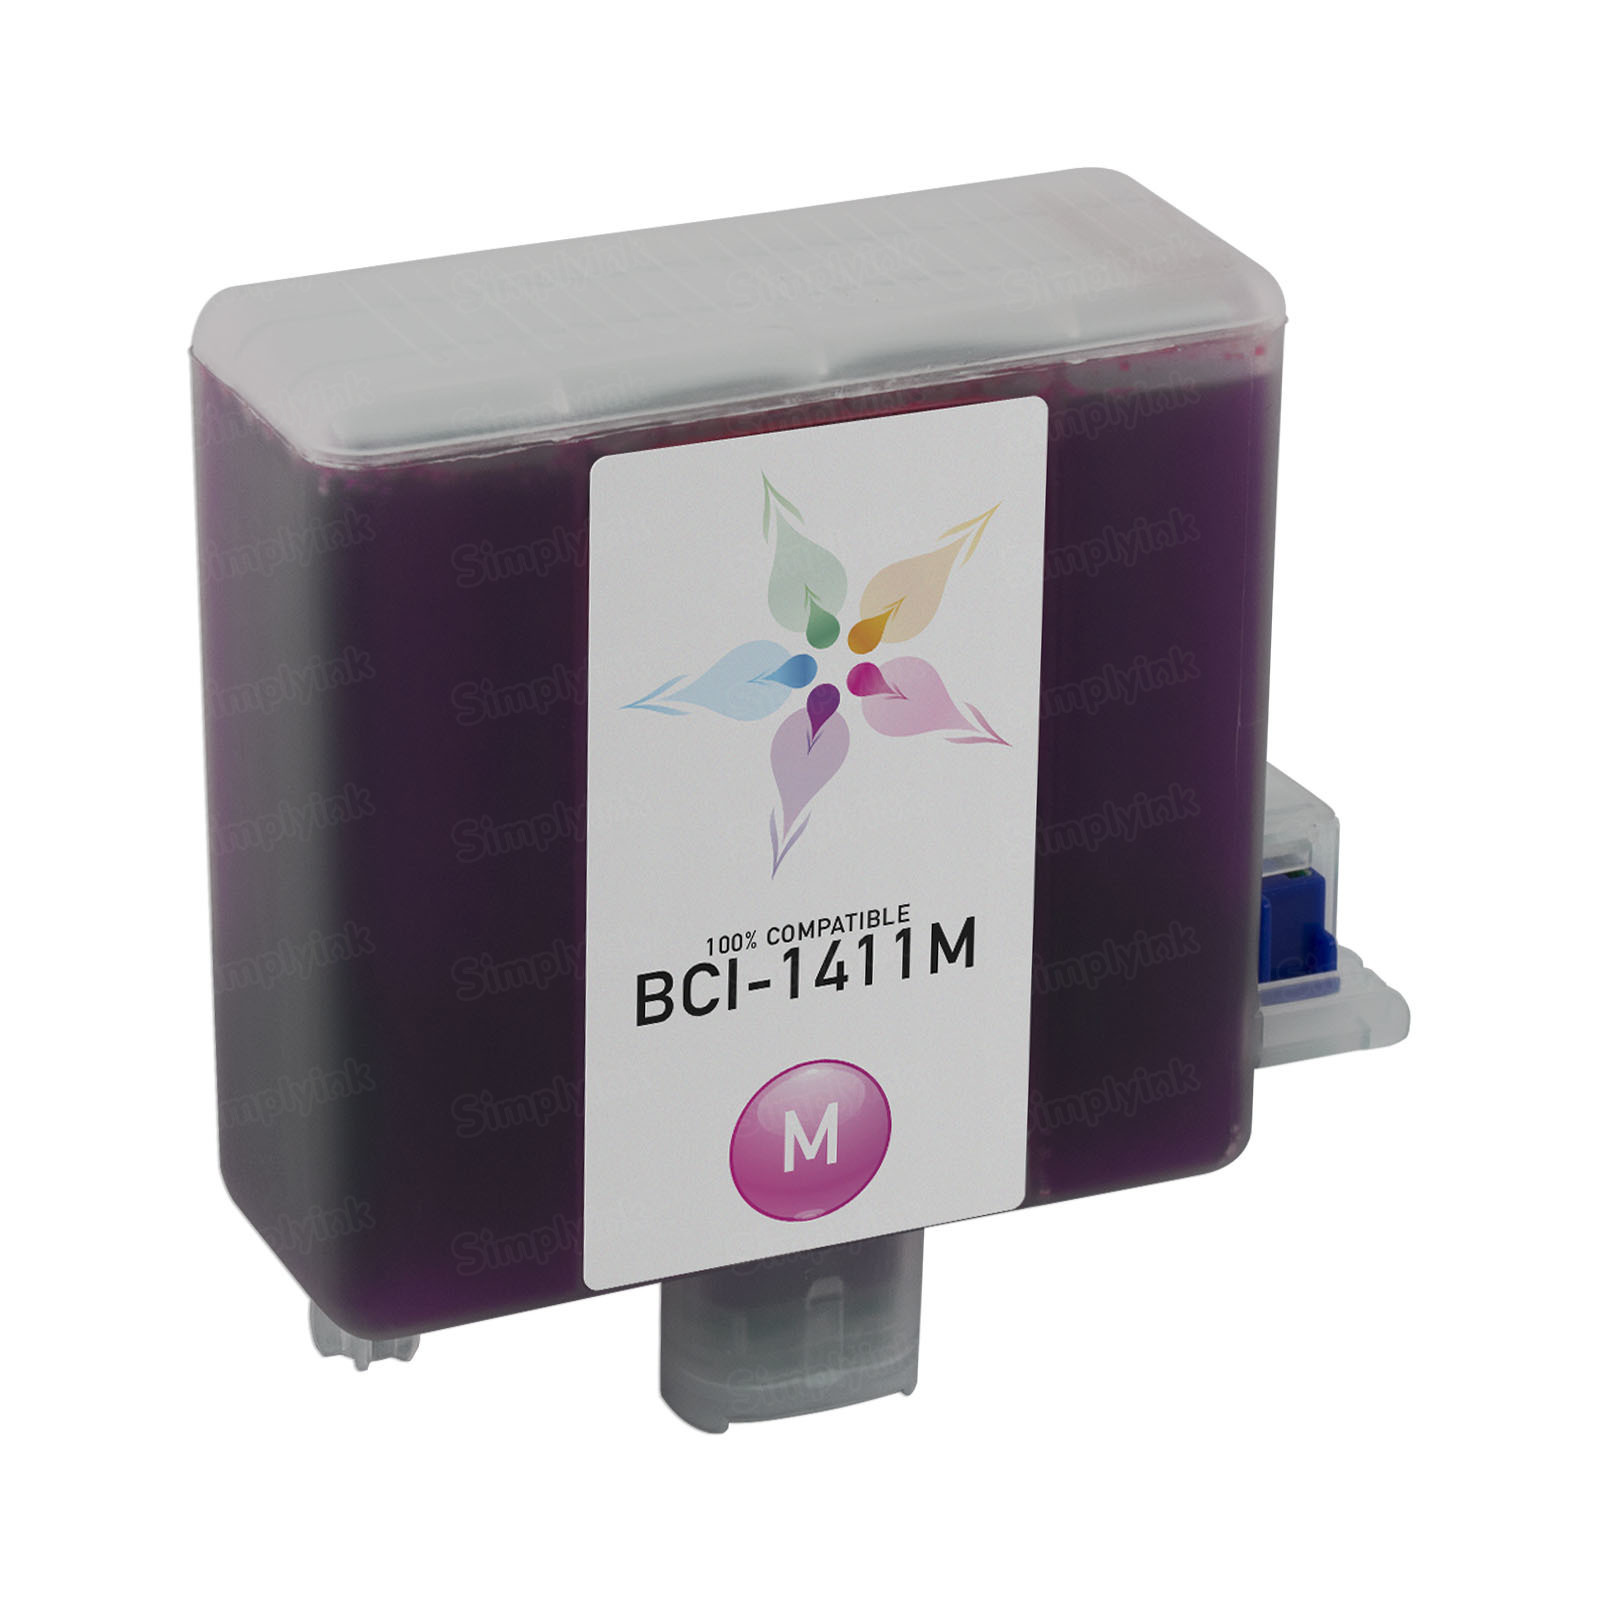 Canon Compatible BCI-1411M Magenta Ink for imagePROGRAF W7200 & W8200